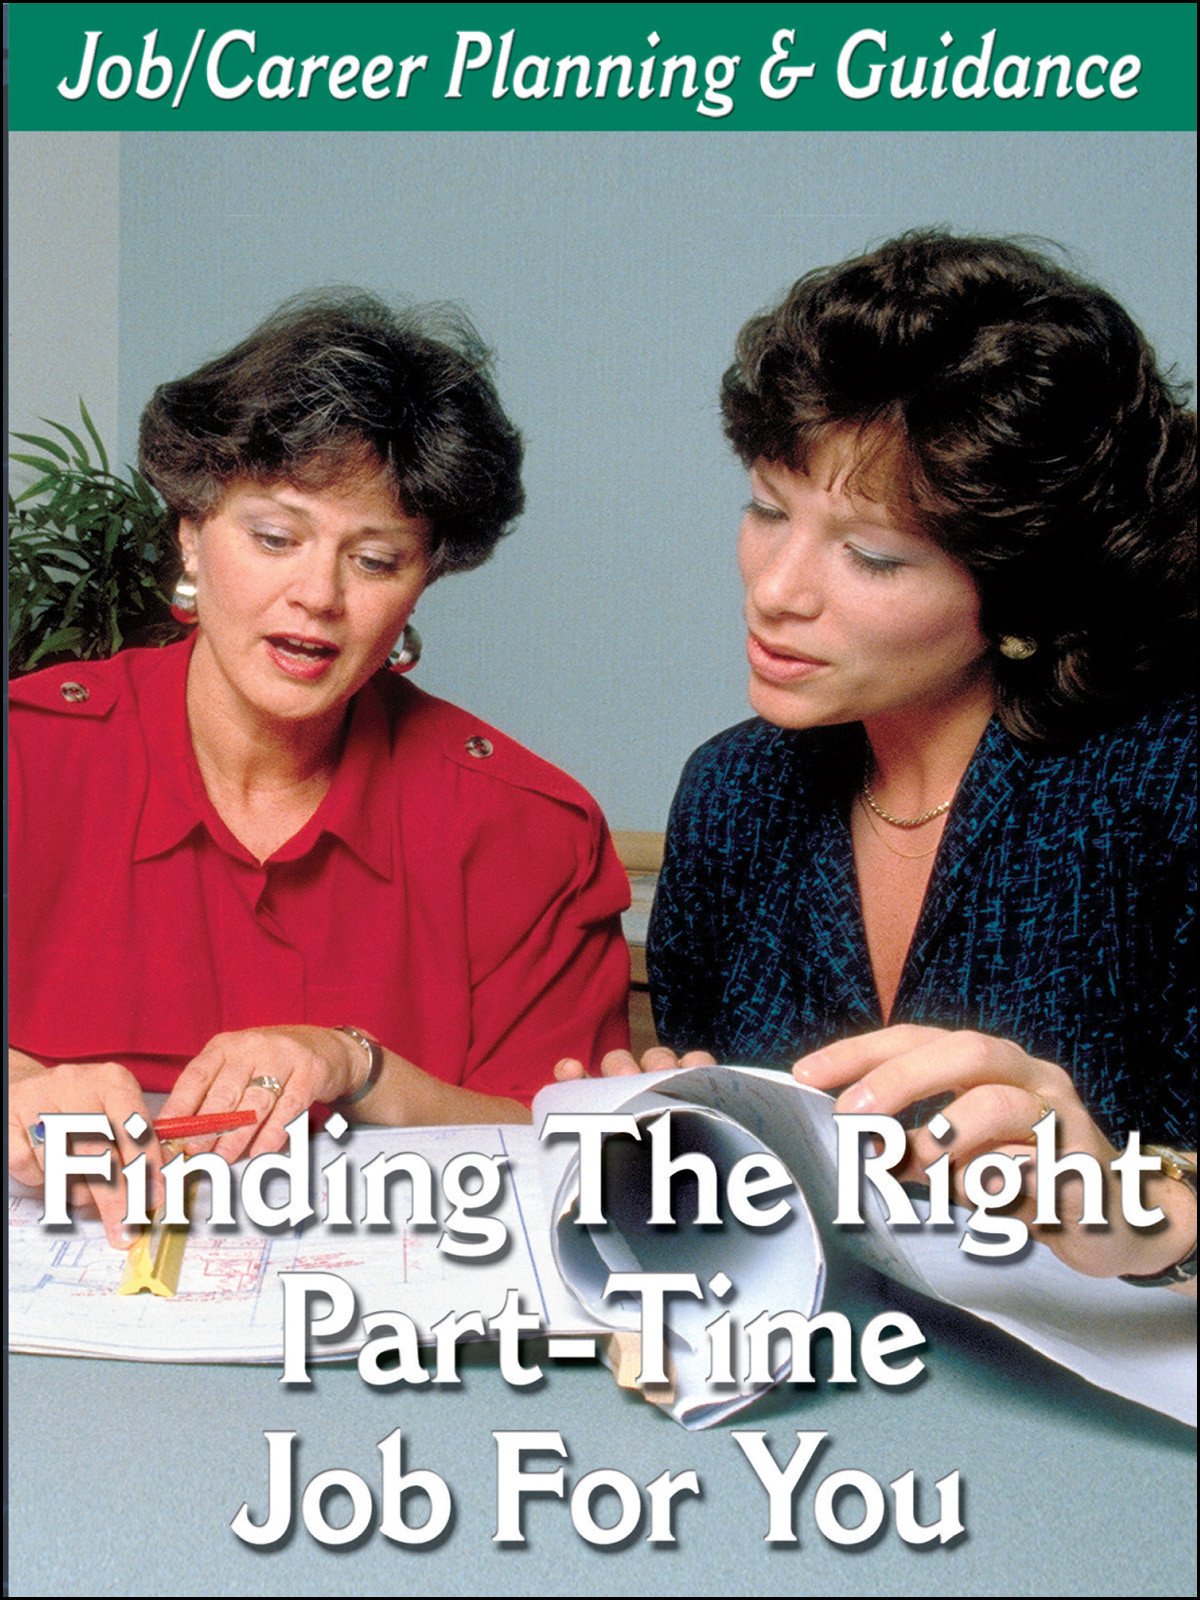 L916 - Career Planning How to Find The Right Part-Time Job